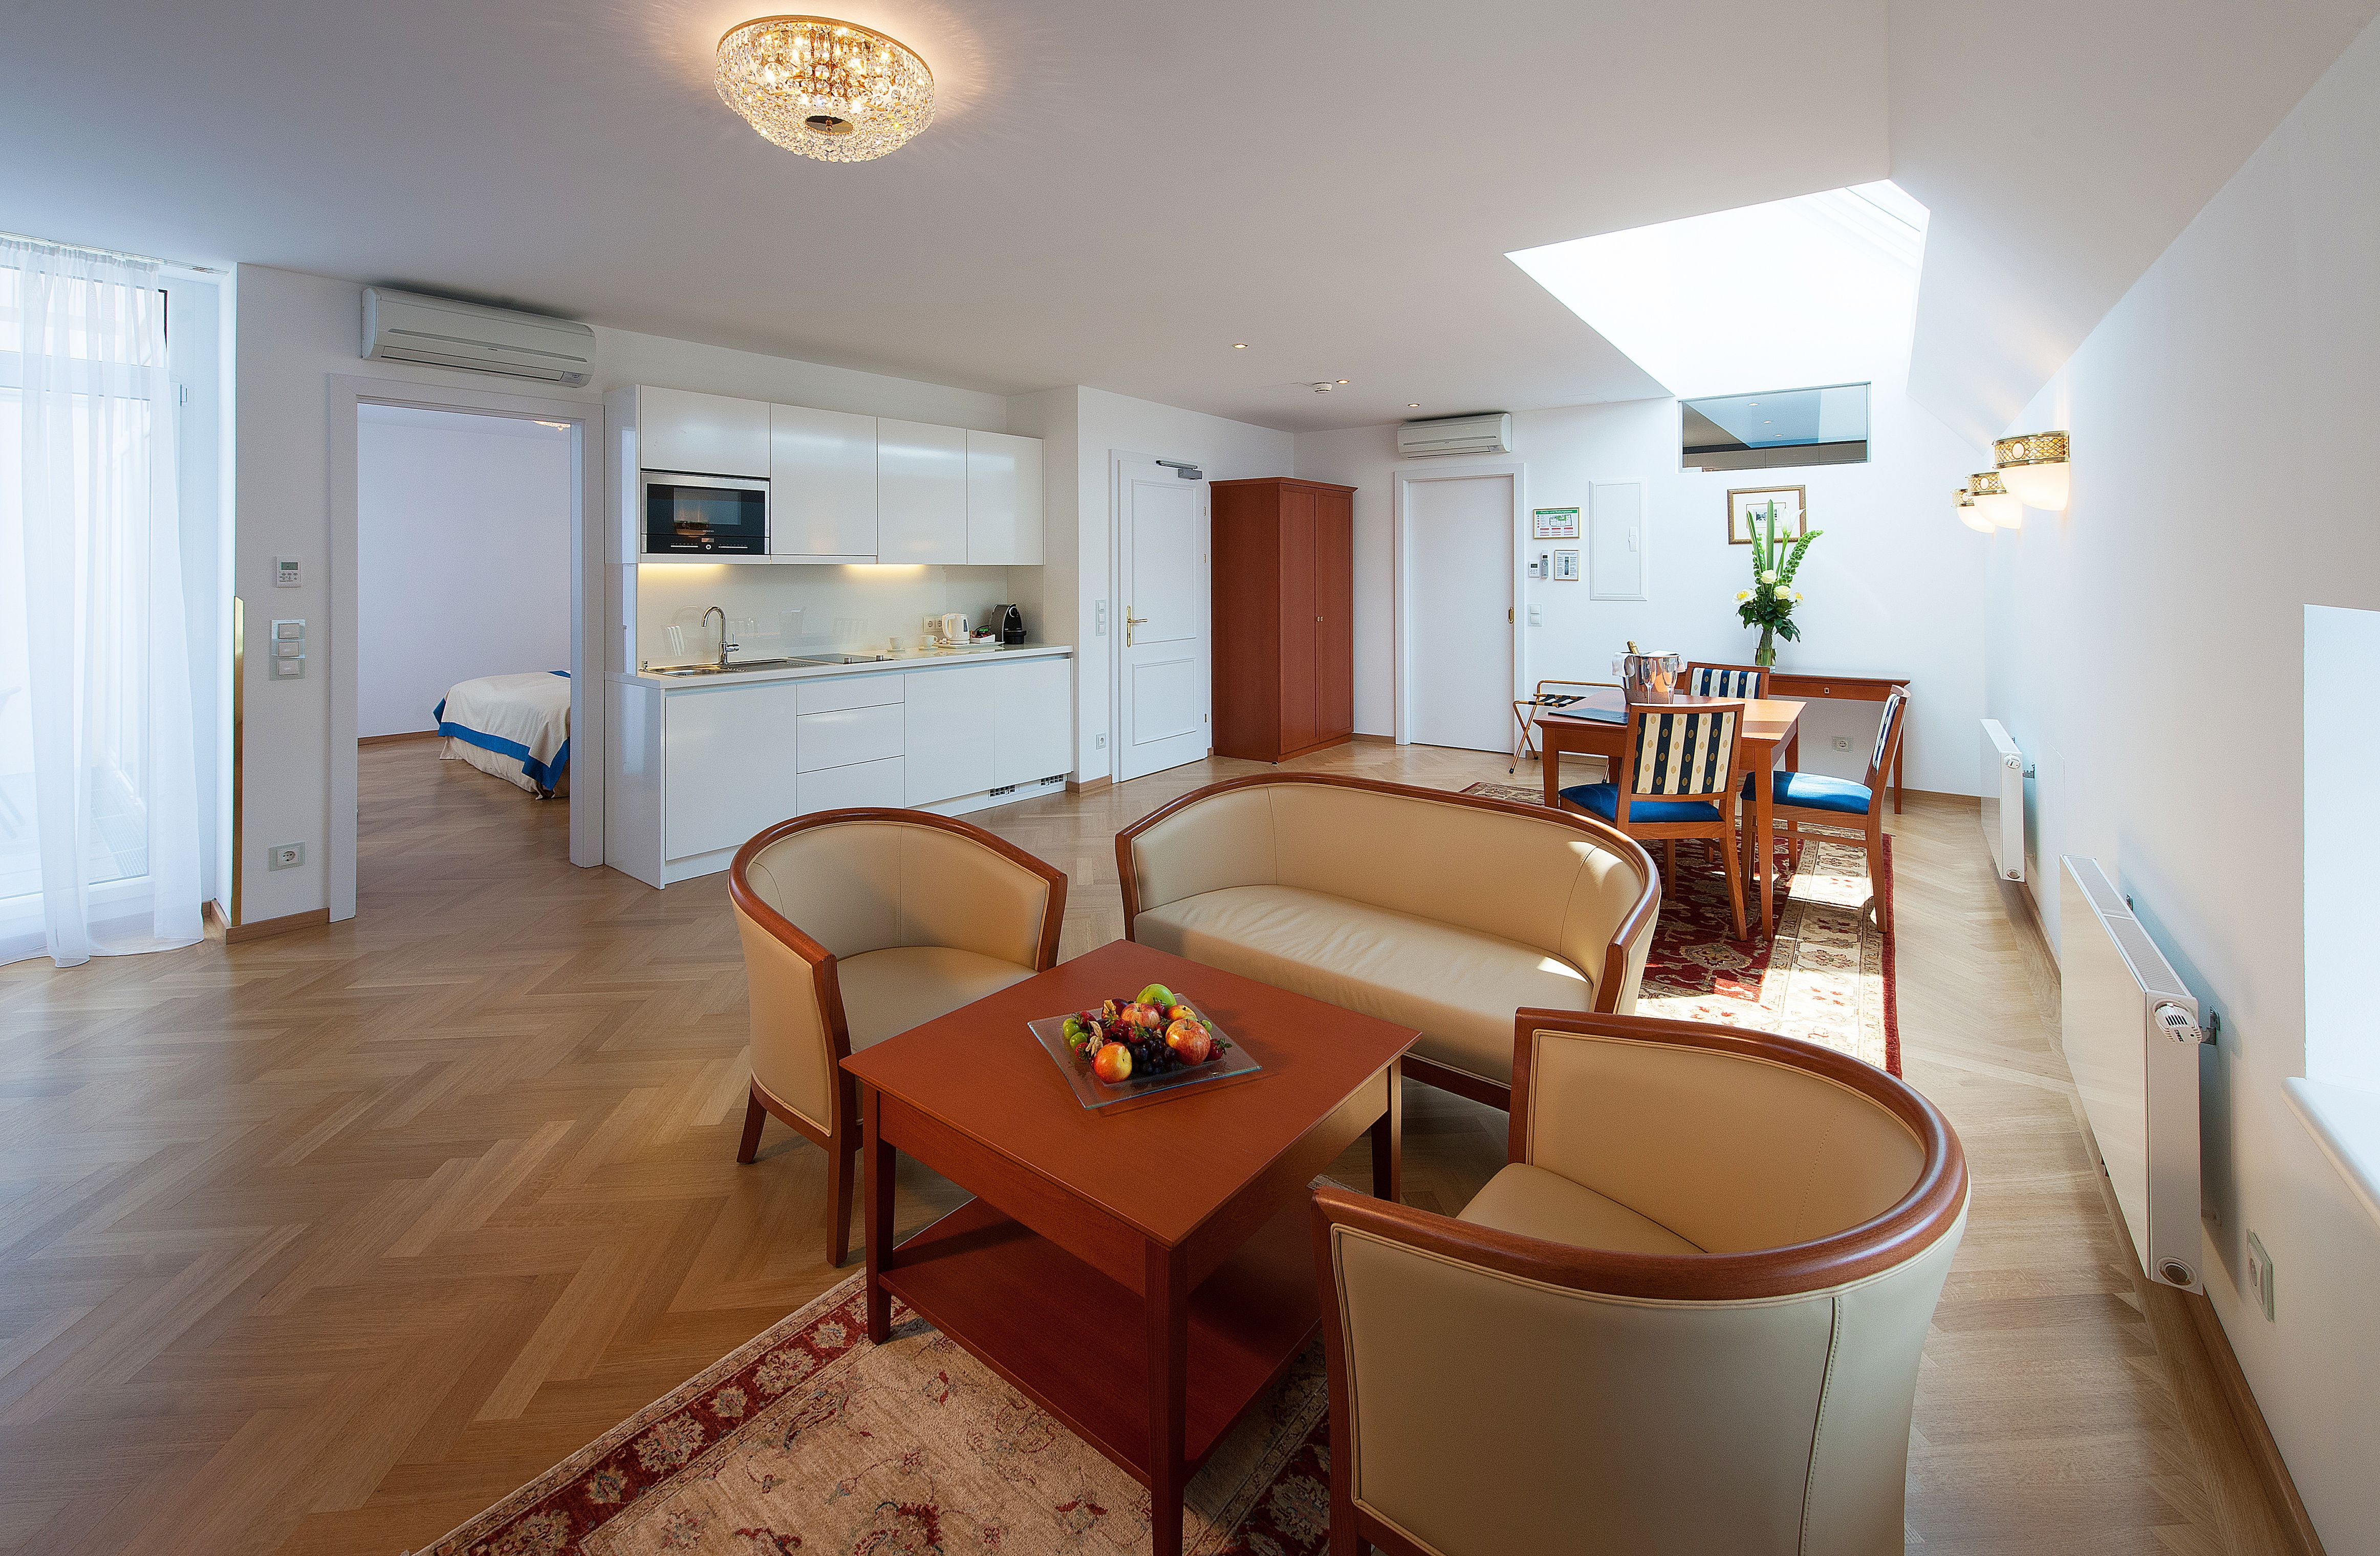 The Extremely Spacious Luxuriously Appointed Apartments At The - Extremely-stylish-apartment